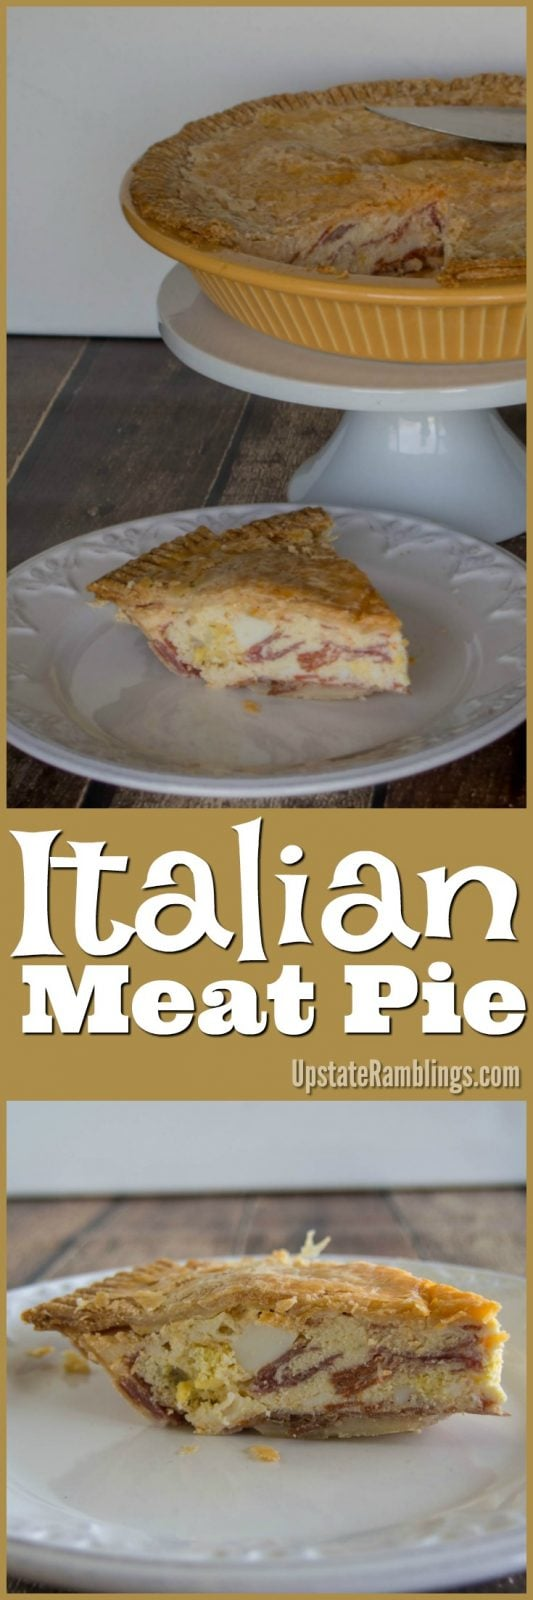 Italian Meat Pie - make this traditional Italian dish featuring proscuitto, sopresseta, pepperoni, sausage, cheese and eggs all baked into a savory pie! This recipe for Easter Meat Pie is perfect for your Easter breakfast or brunch. #Easter #Easterrecipes #Easterbrunch #Meatpie #Brunch